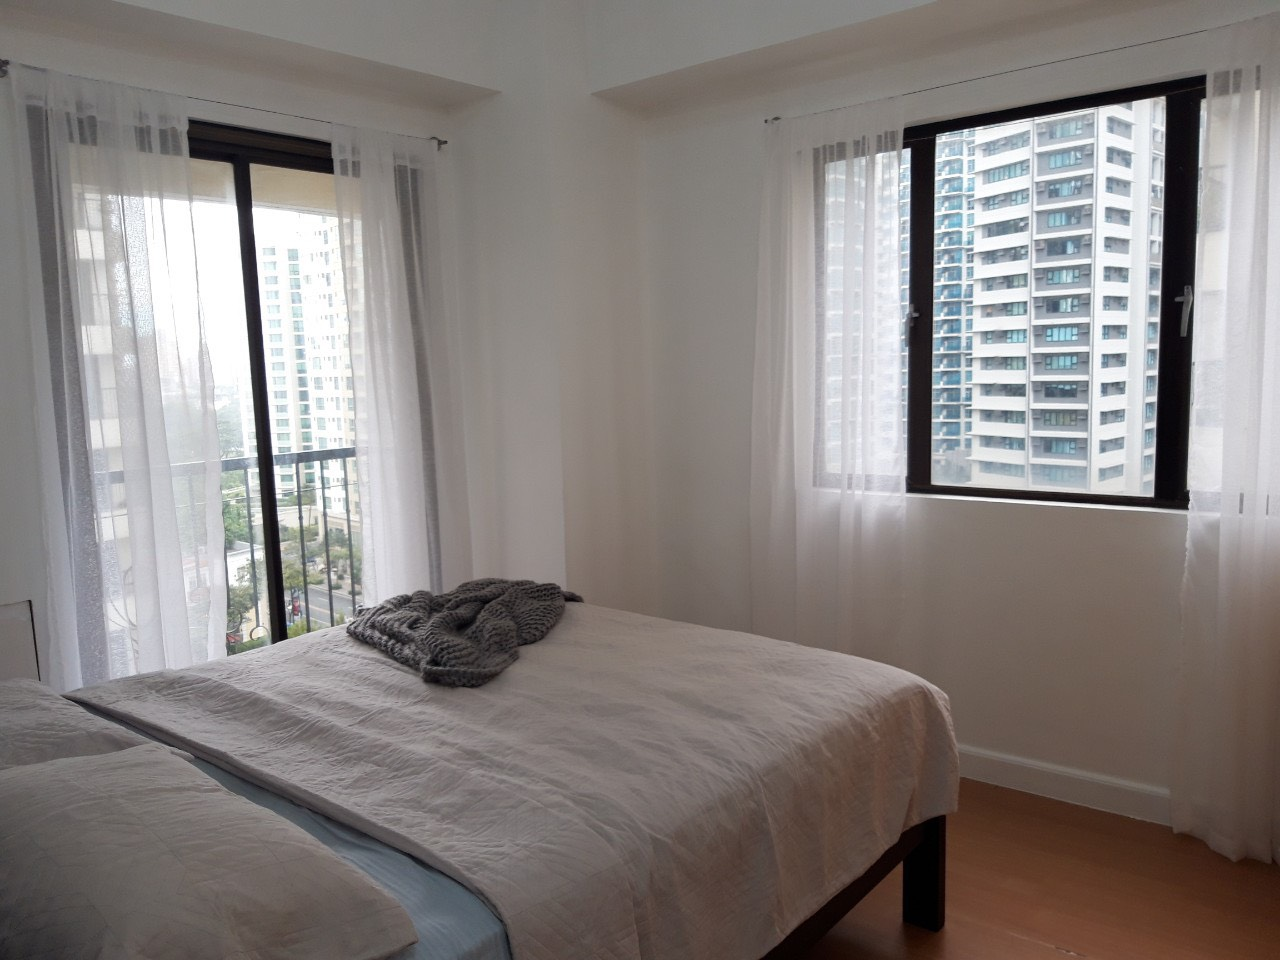 1 Bedroom Condo For Sale, Forbeswood Heights, BGC Bedroom